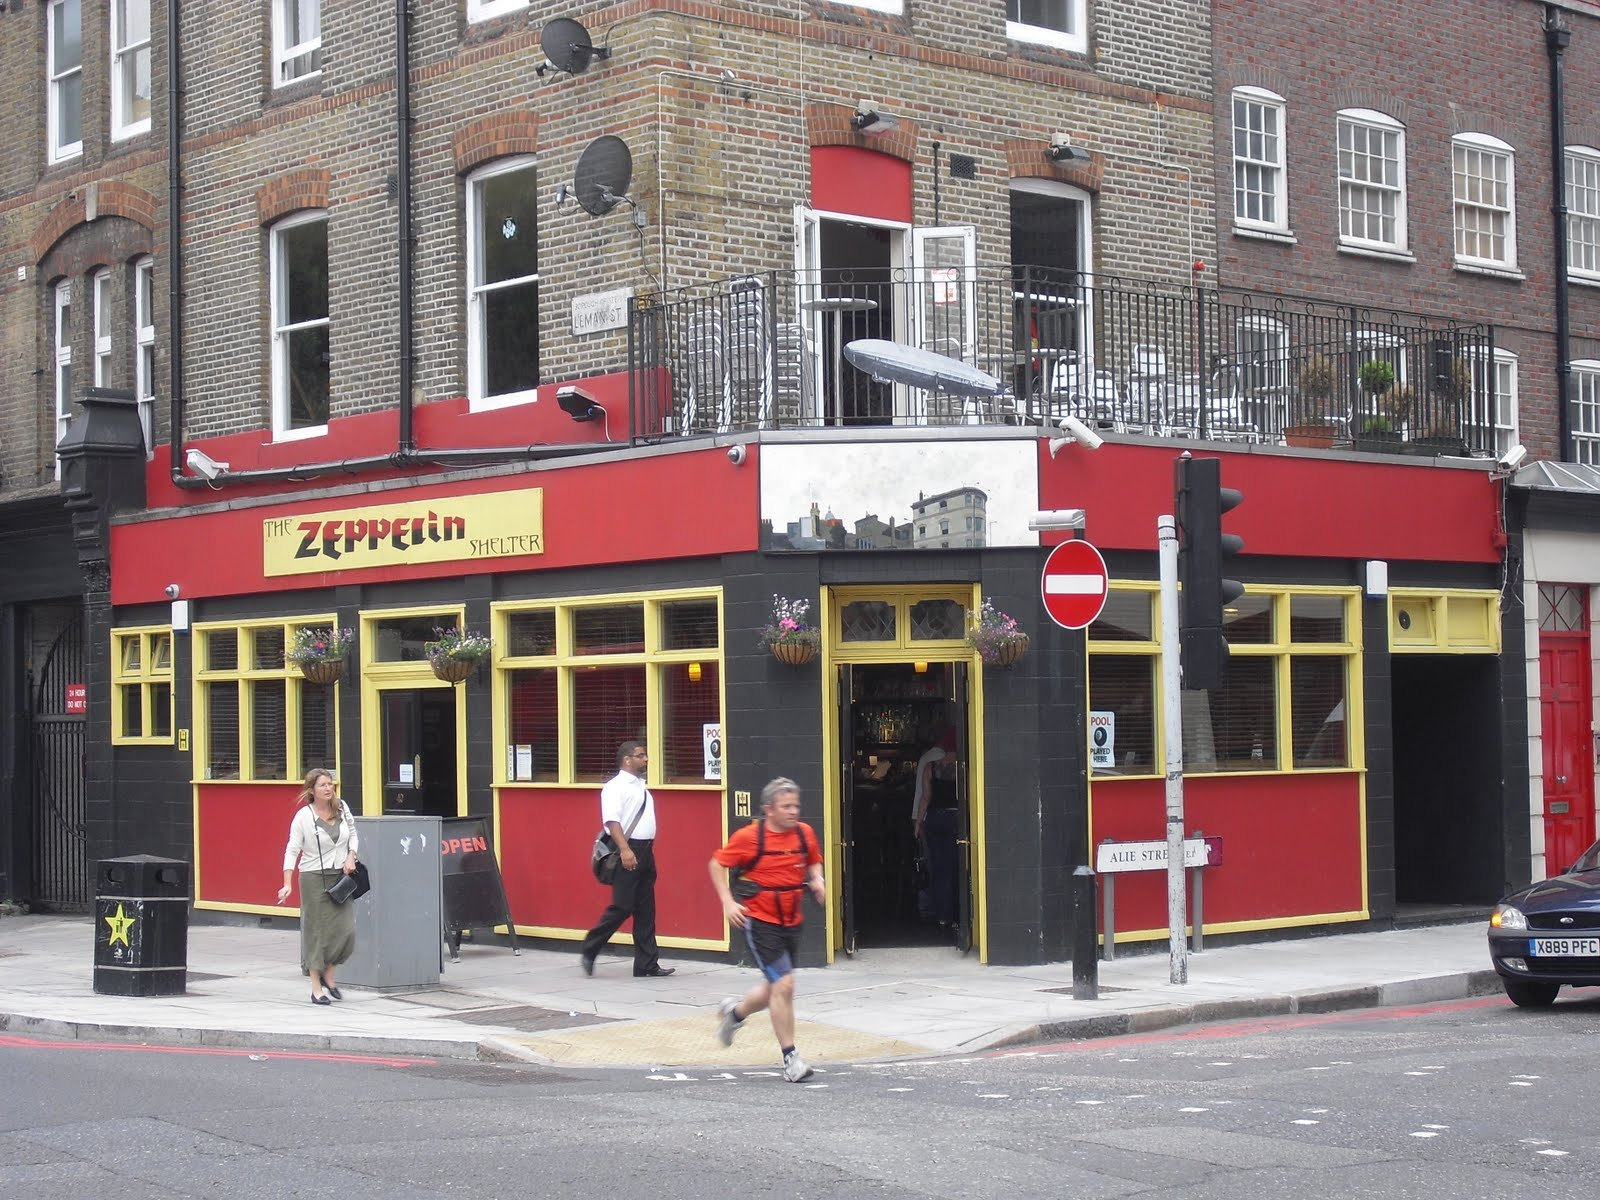 Is Now Frazer House Including Whites Gentlemans Club Offering Adult Entertainment 6 The Black Horses Address In 1810 Was 20 Leman Street